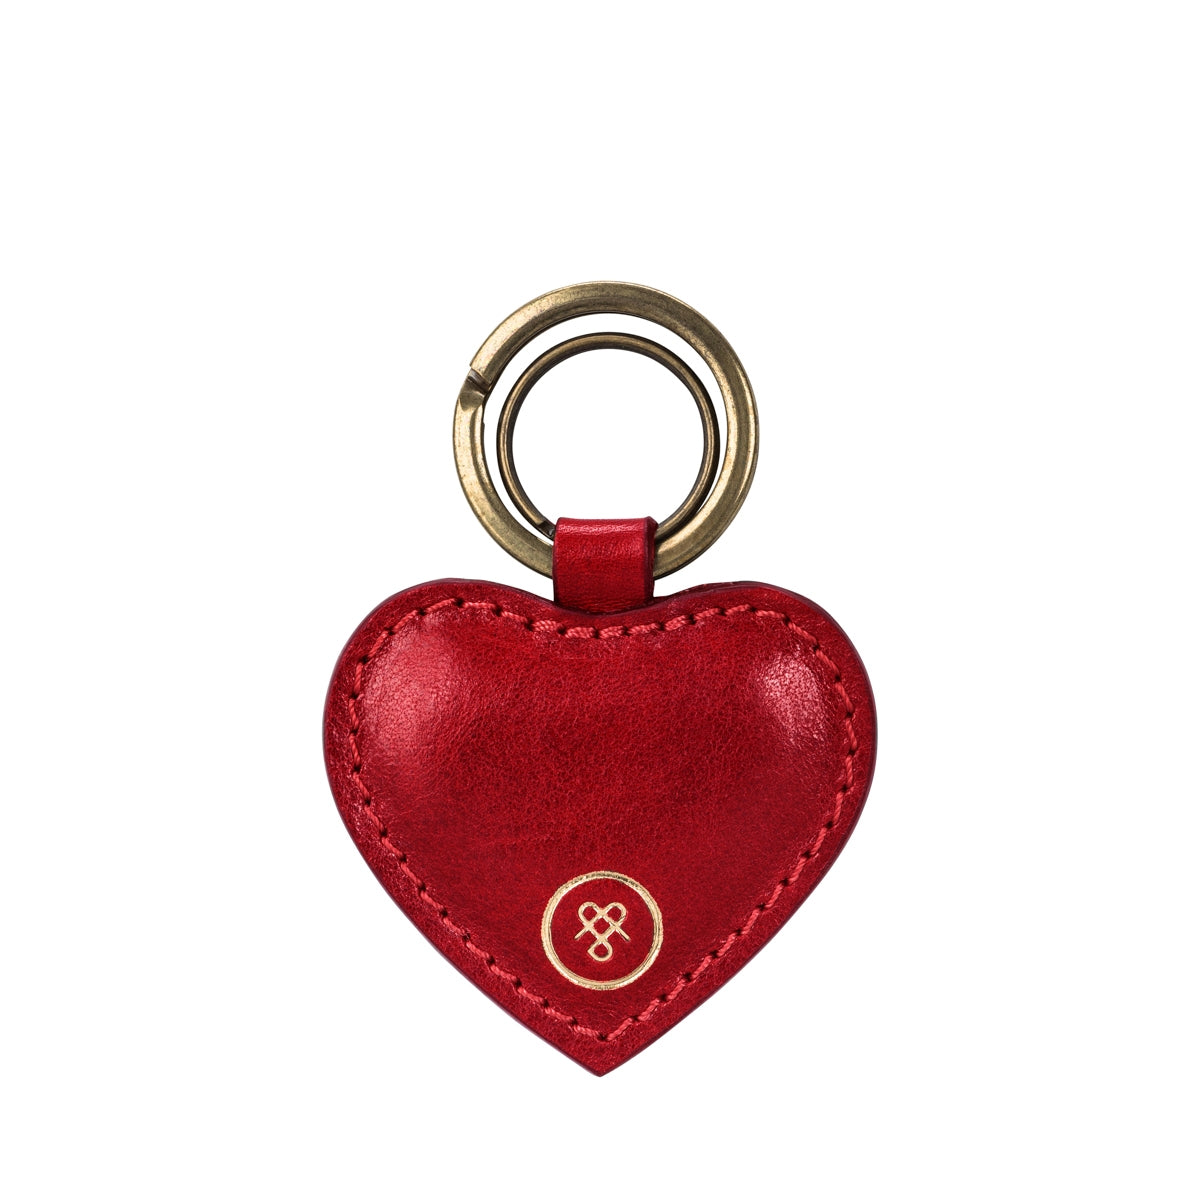 Image 1 of the 'Mimi' Veg-Tanned Leather Heart Key Ring